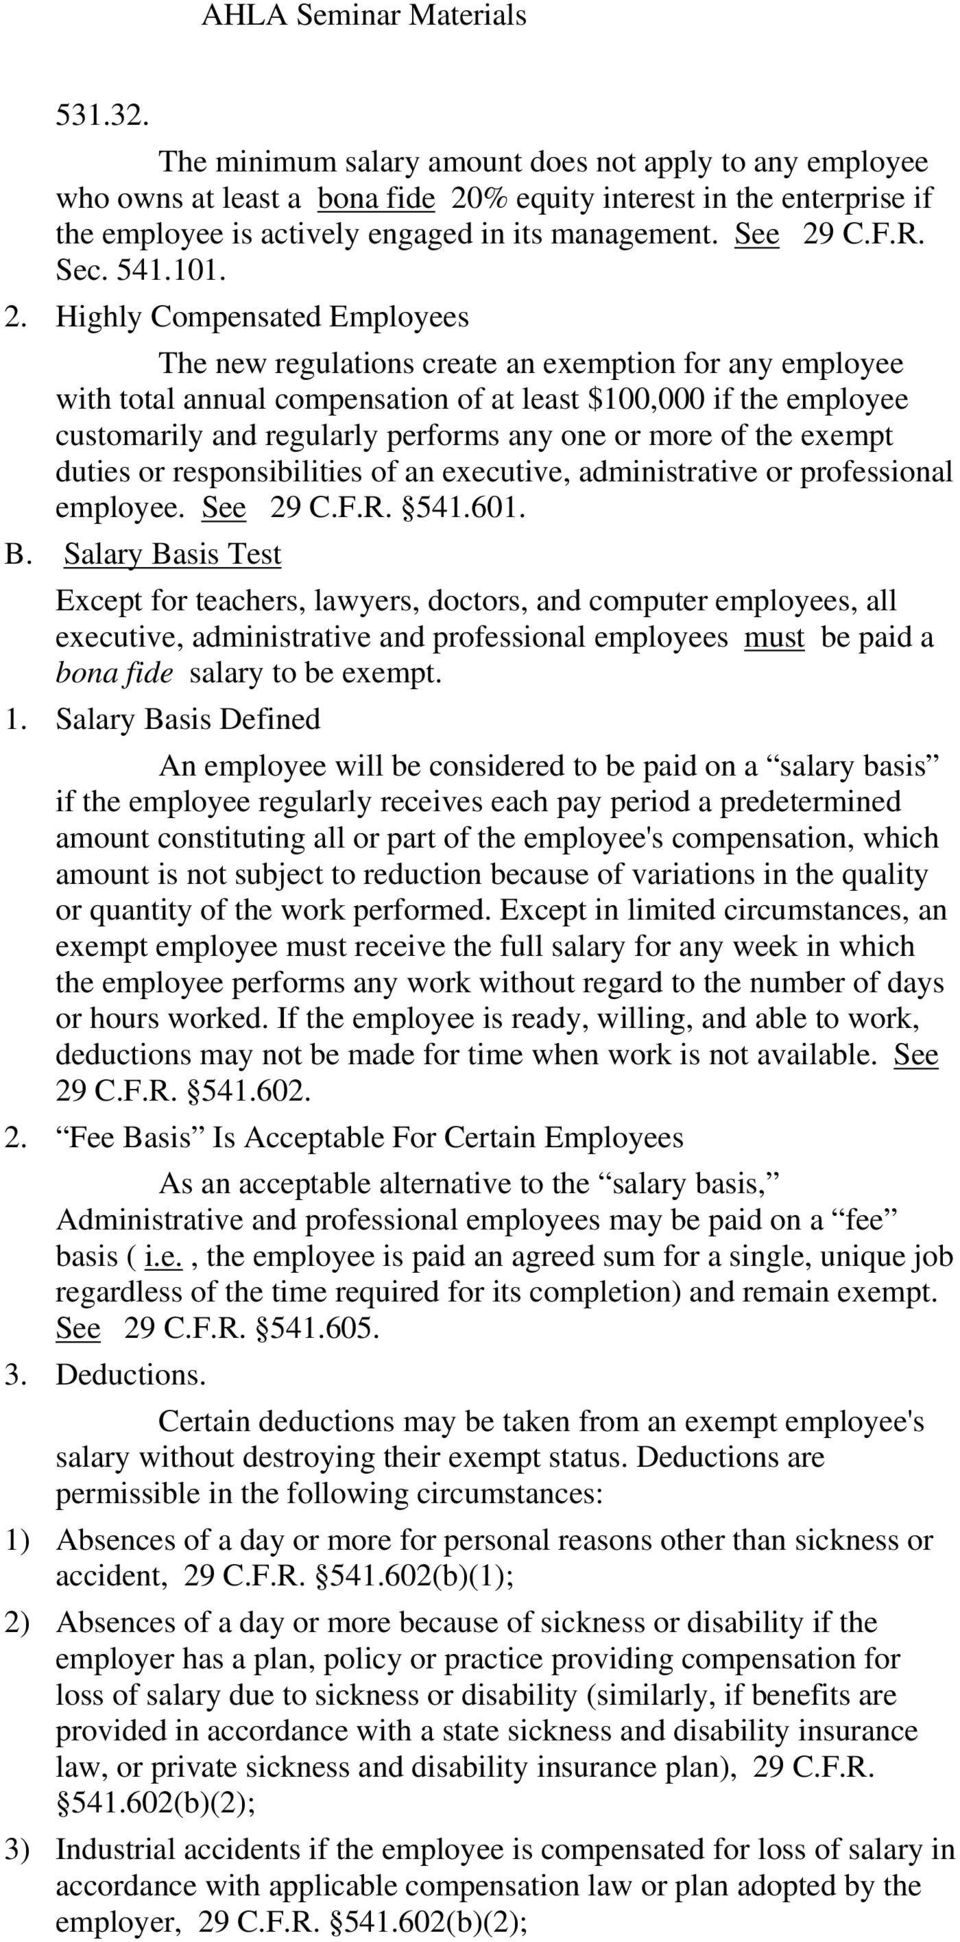 Highly Compensated Employees The new regulations create an exemption for any employee with total annual compensation of at least $100,000 if the employee customarily and regularly performs any one or